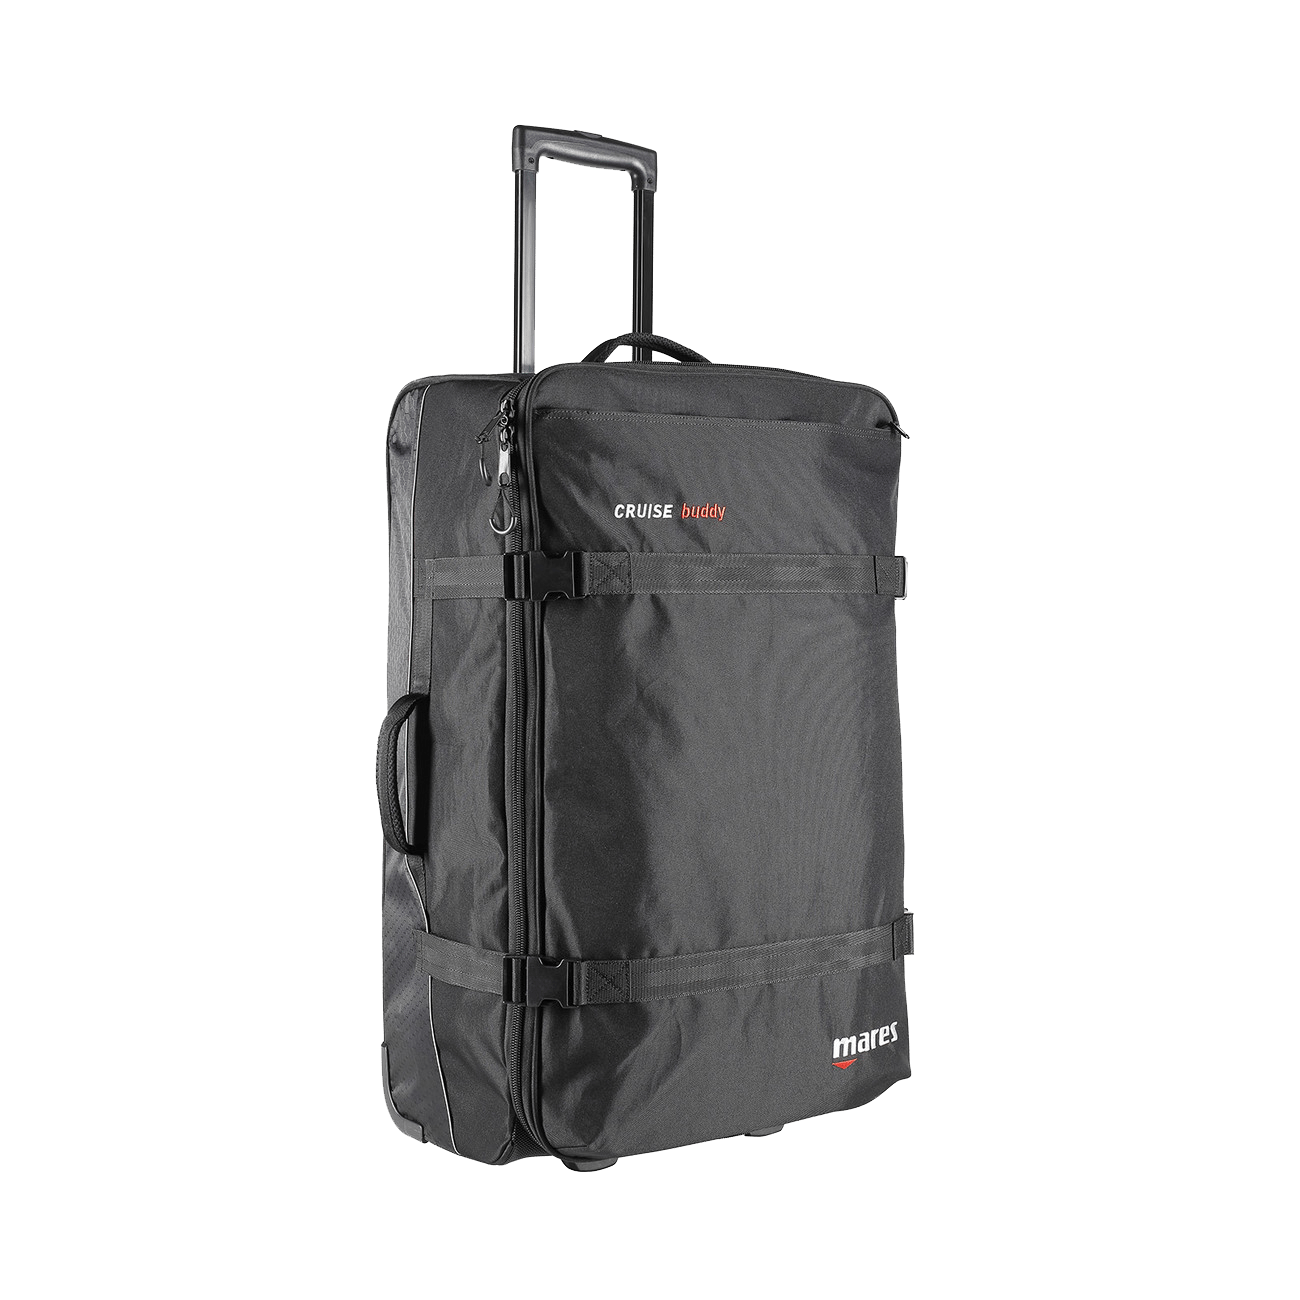 Mares Cruise Buddy Roller Bag | Mares Dive Bags | Gill Divers